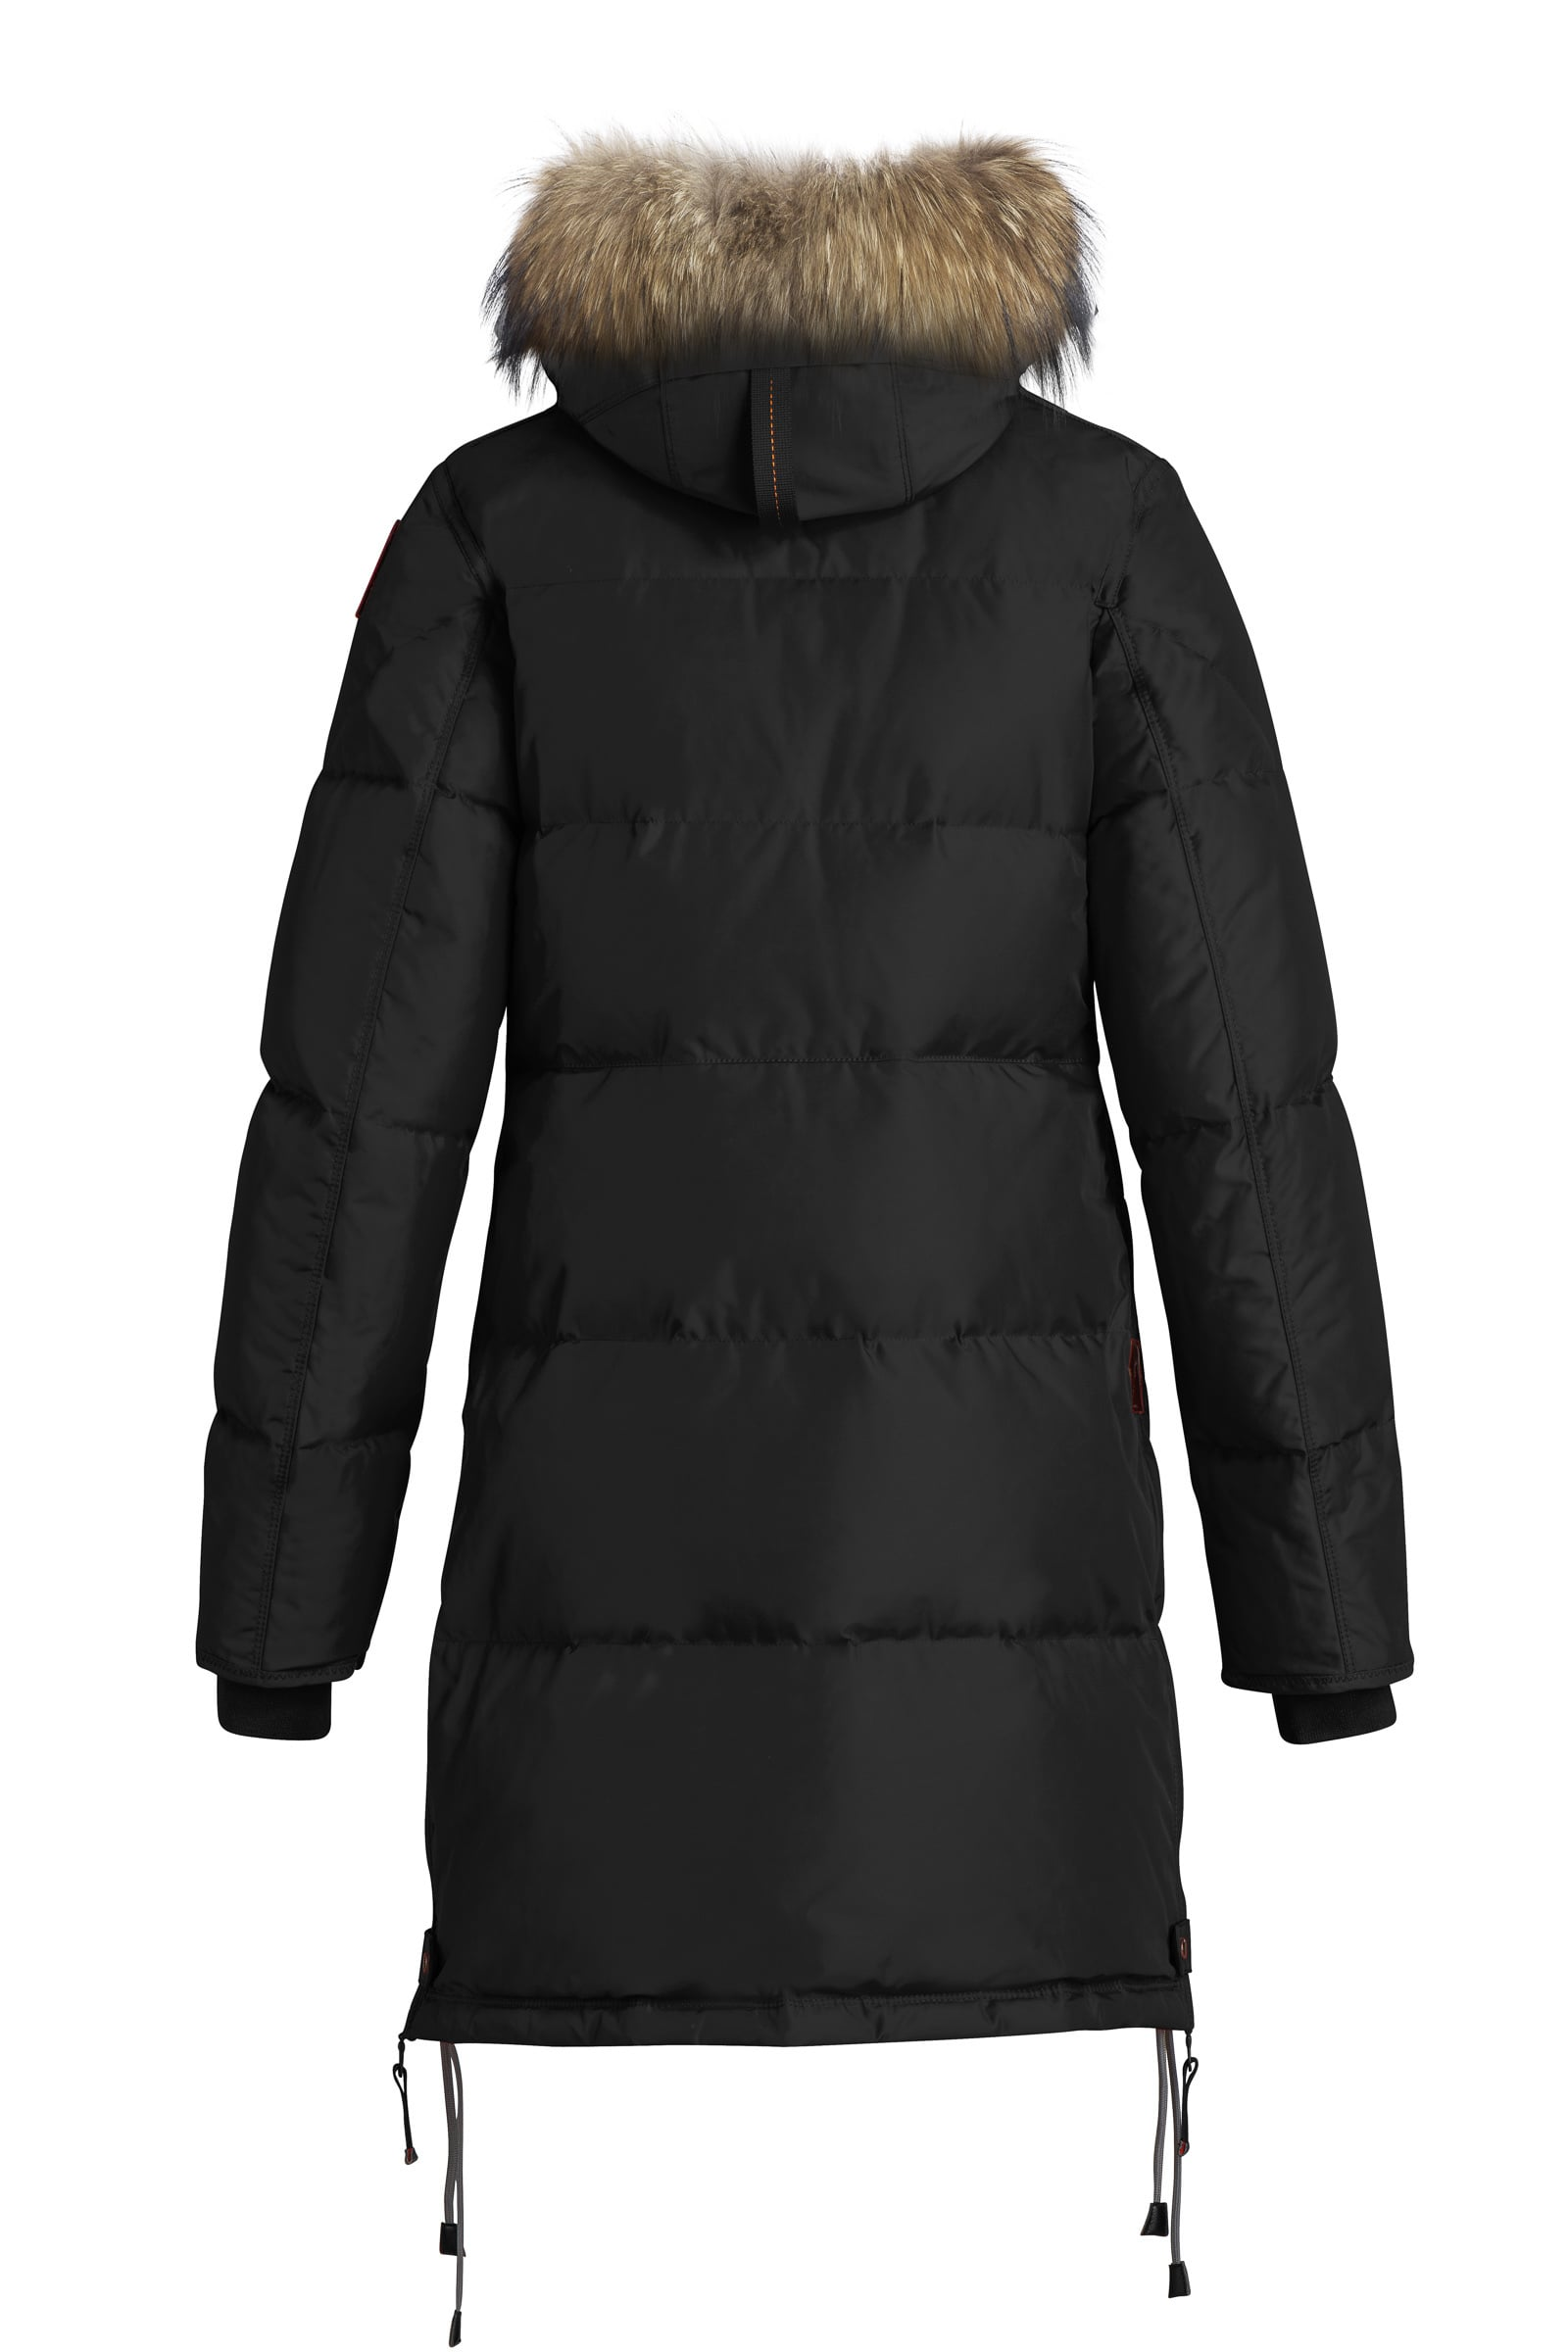 Kellyjeans Parajumpers Koop Woman Je� Long Bear Black nl Jacket Ow6qrav0w